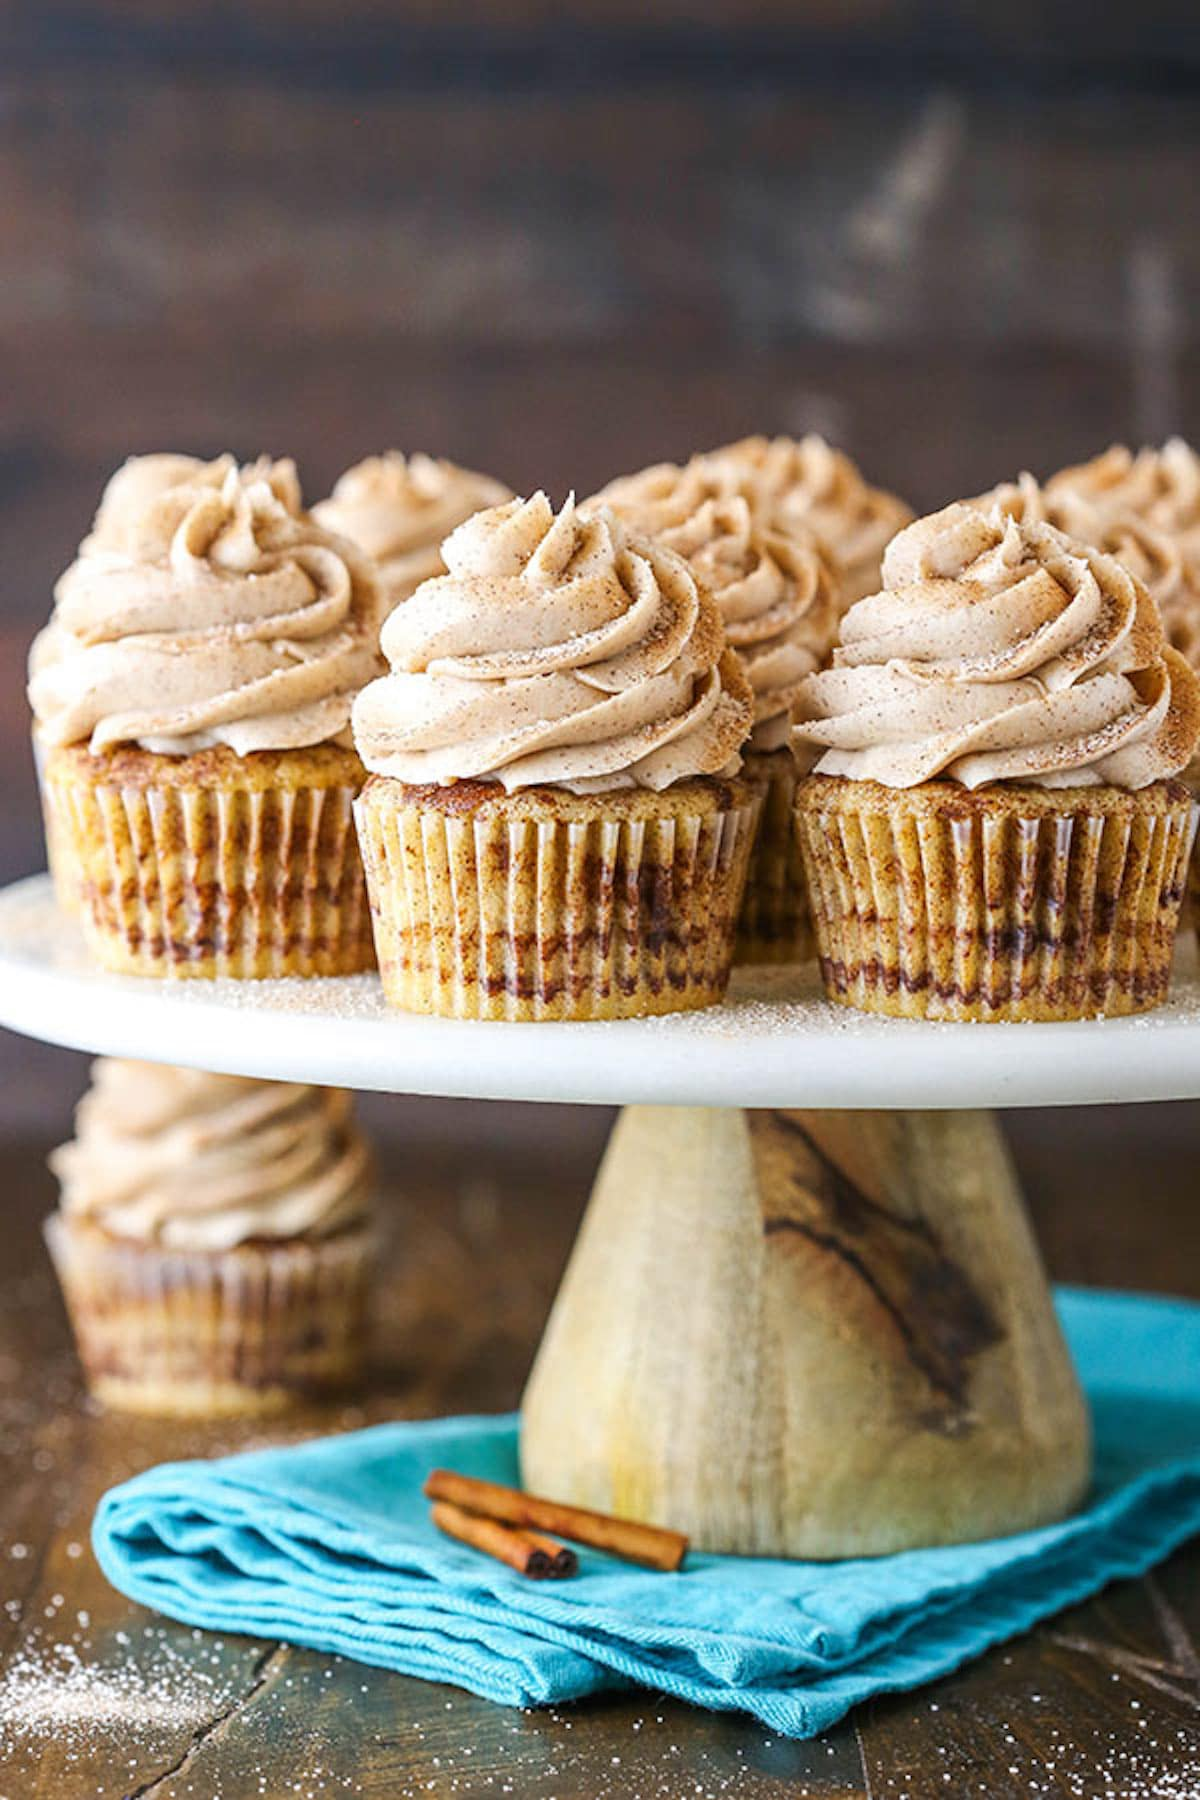 Frosted Cinnamon Cupcakes Arranged on a Cake Stand